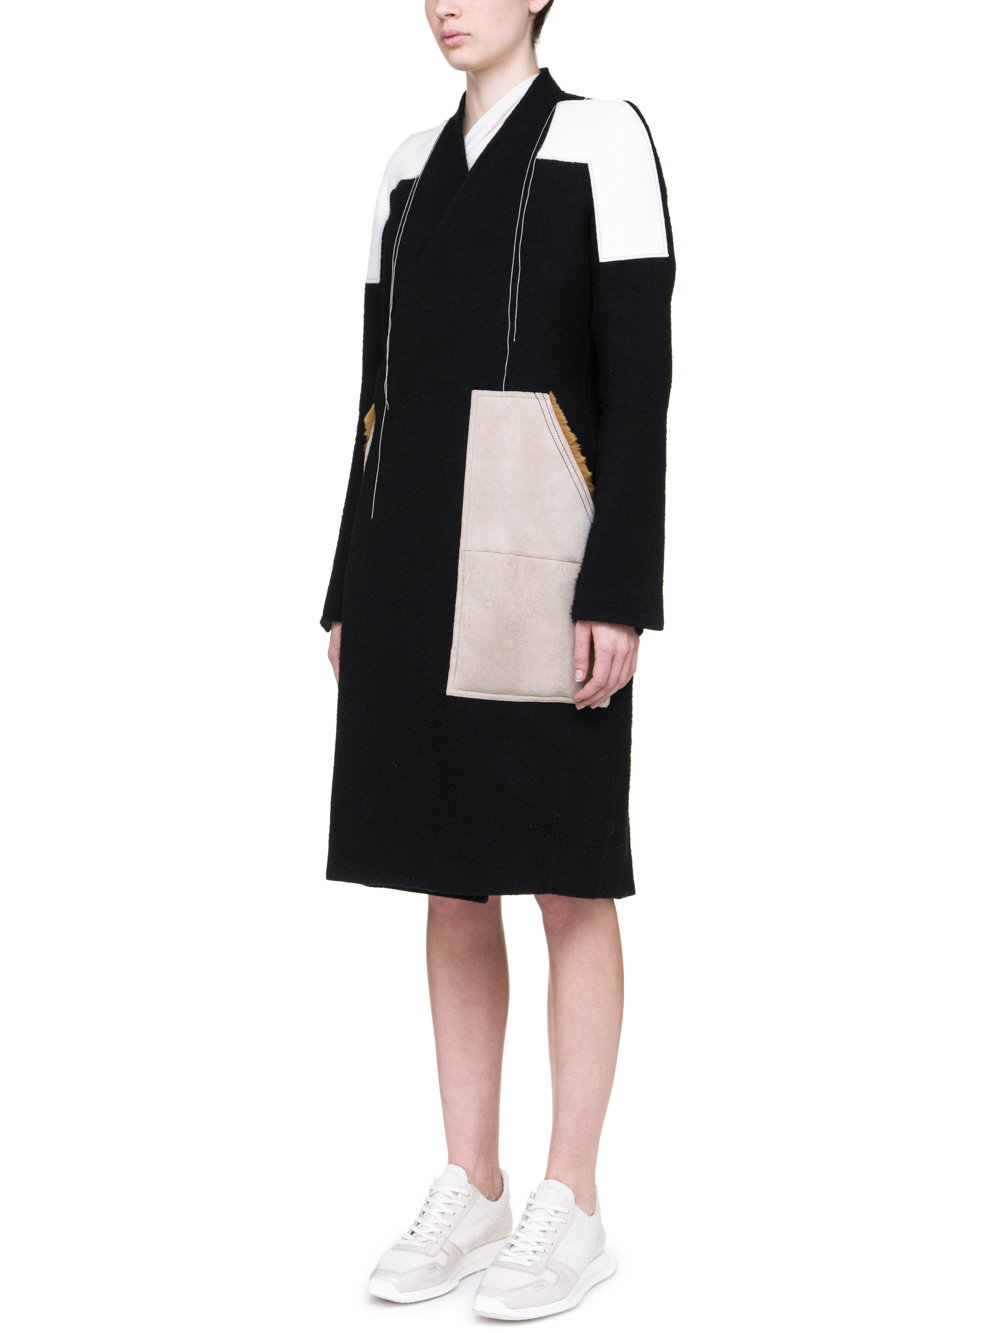 RICK OWENS OFF-THE-RUNWAY SOFT PATCH COAT IN BLACK